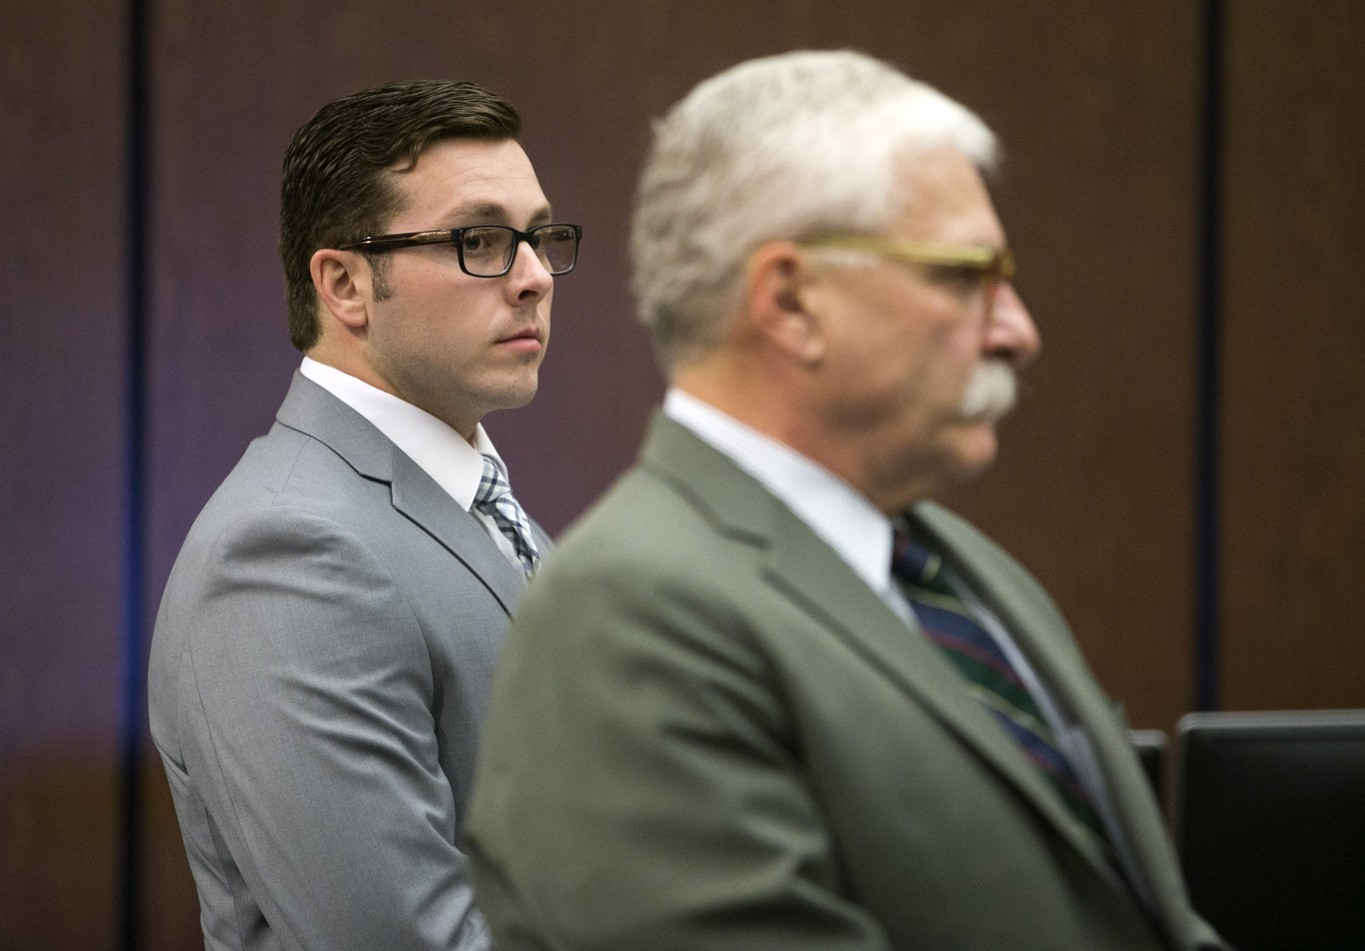 Ex-officer found not guilty of 2nd-degree murder at Ariz. hotel